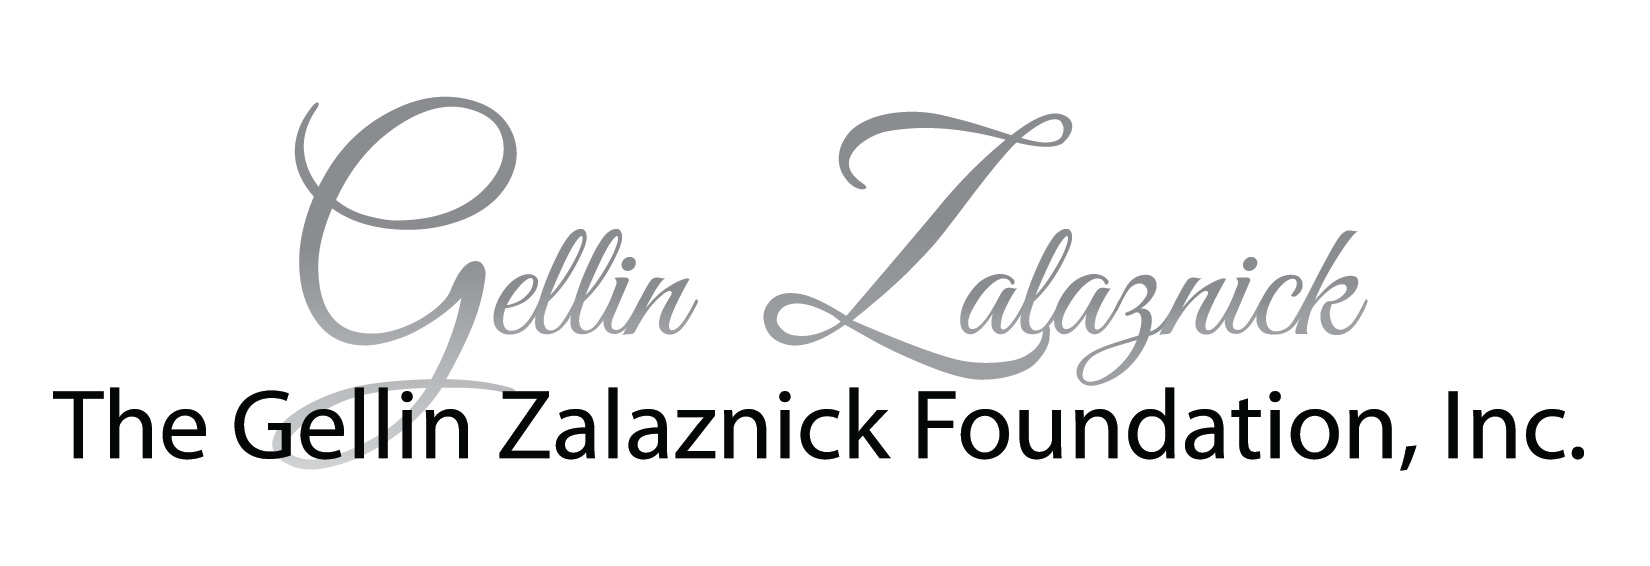 The Gellin Zalaznick Foundation Inc